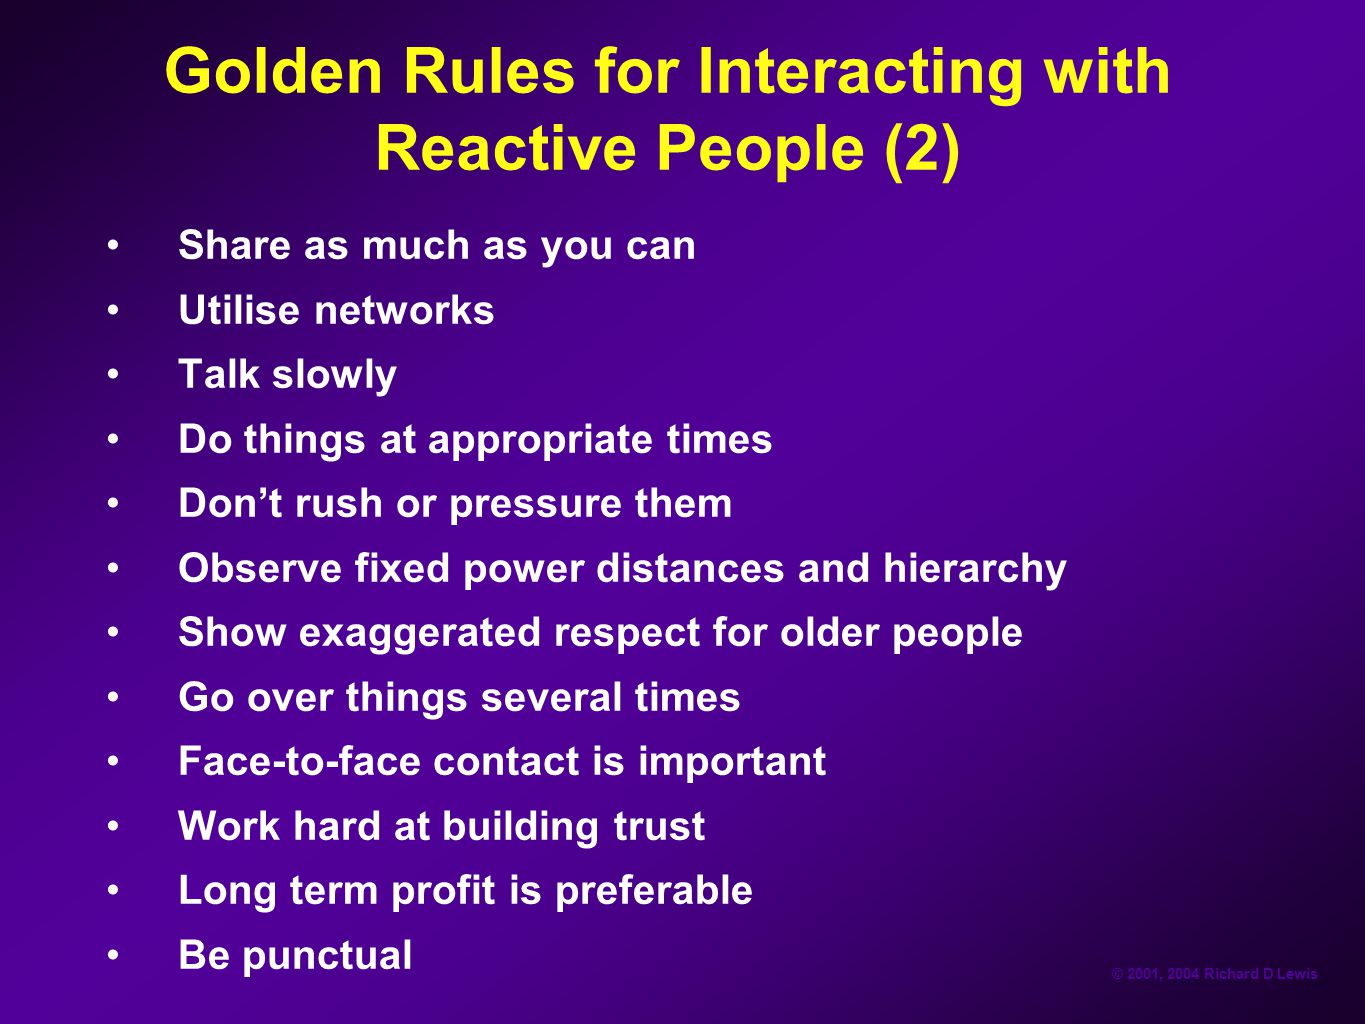 Golden Rules for Interacting with Reactive People (2)